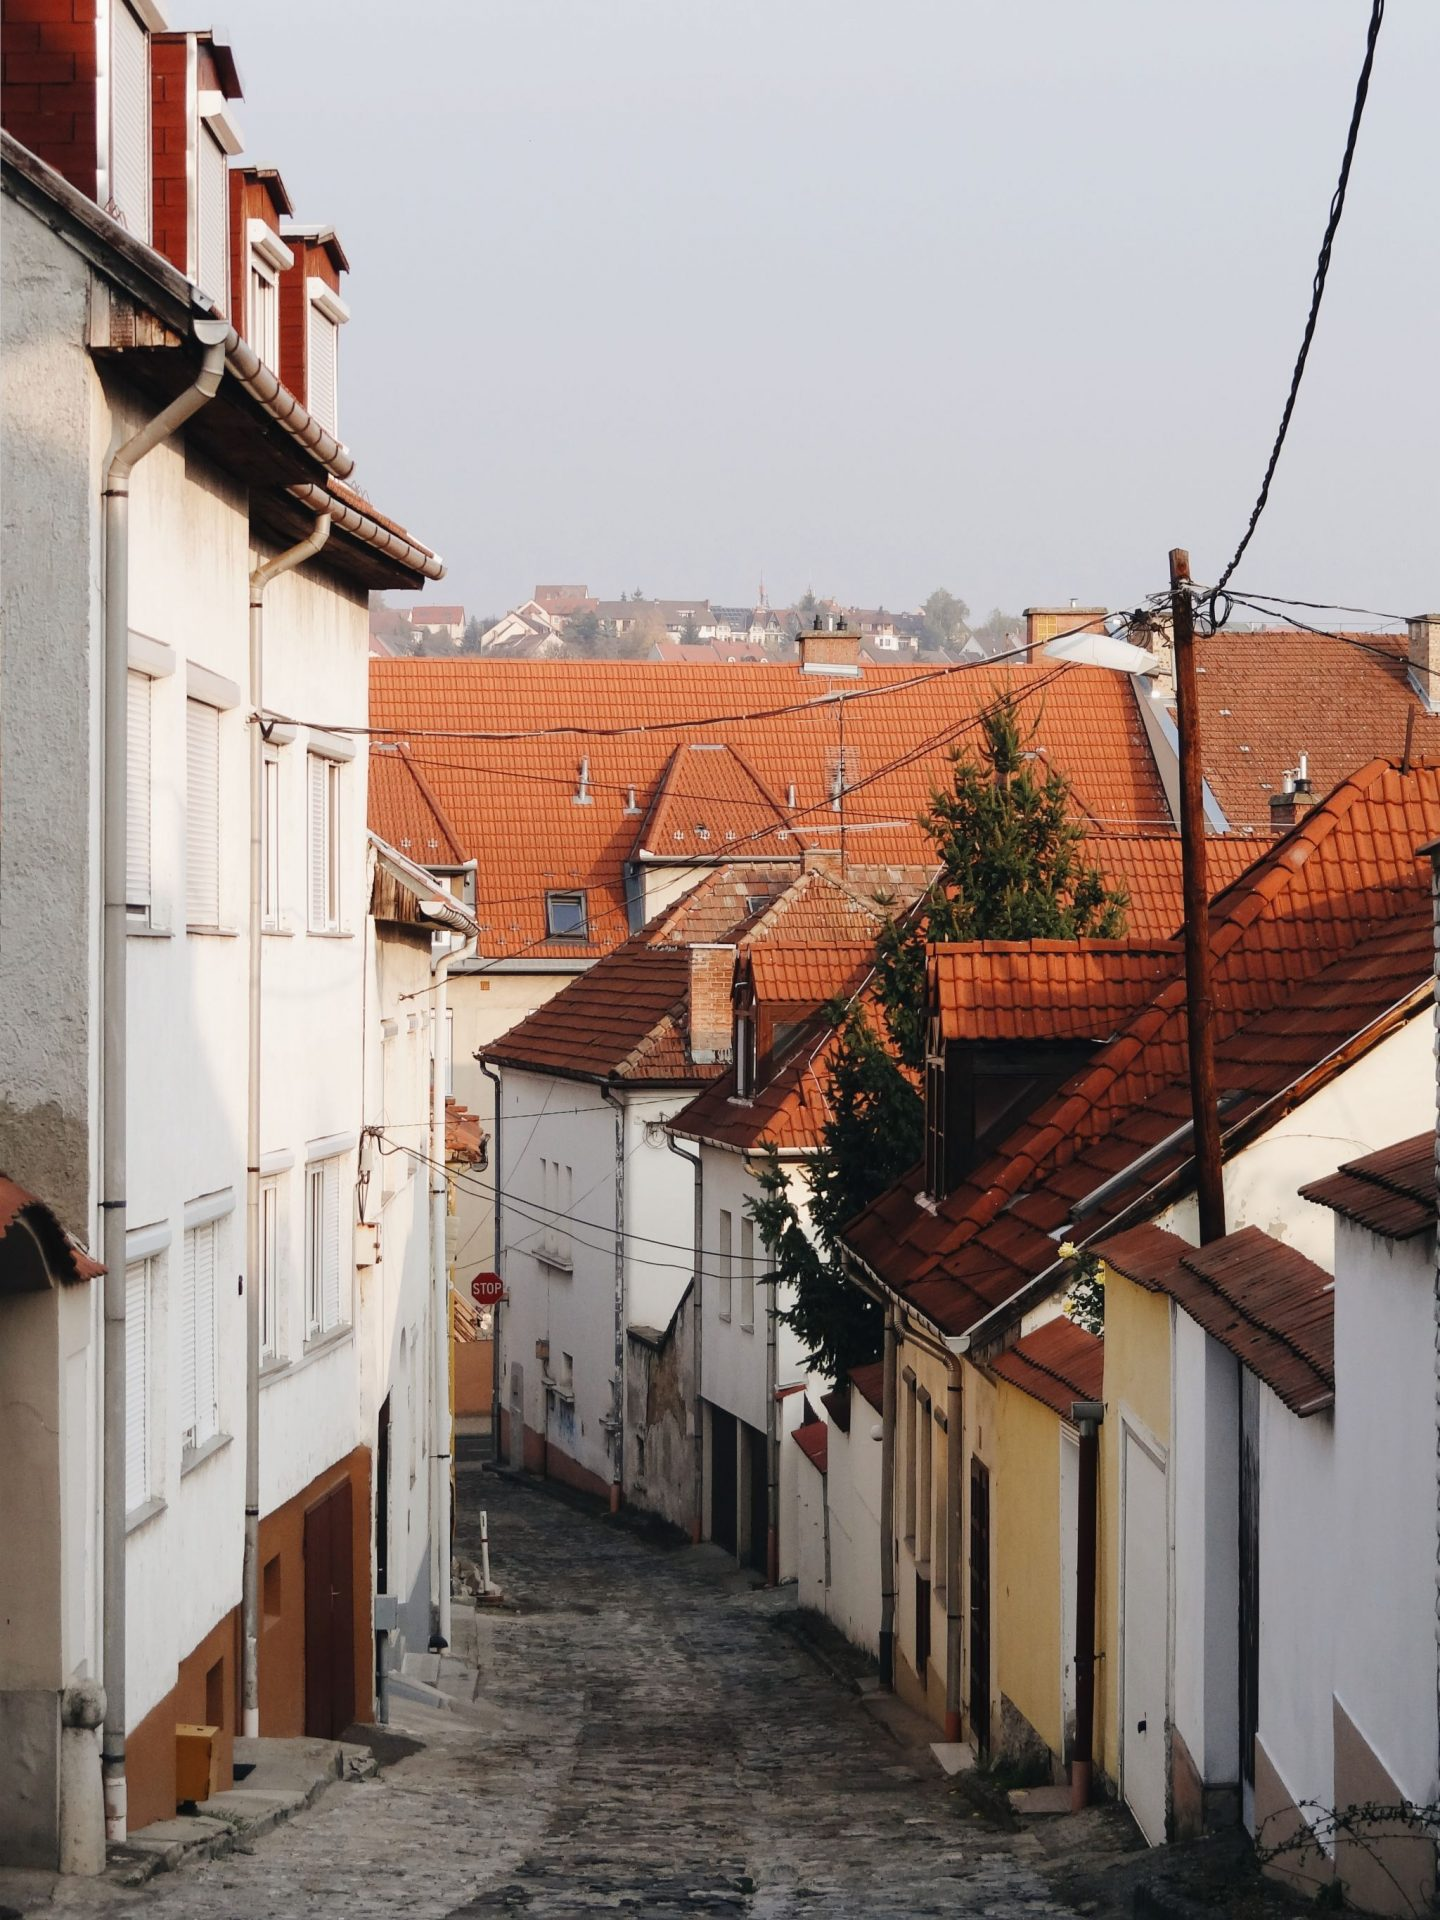 Narrow streets of Eger, Hungary